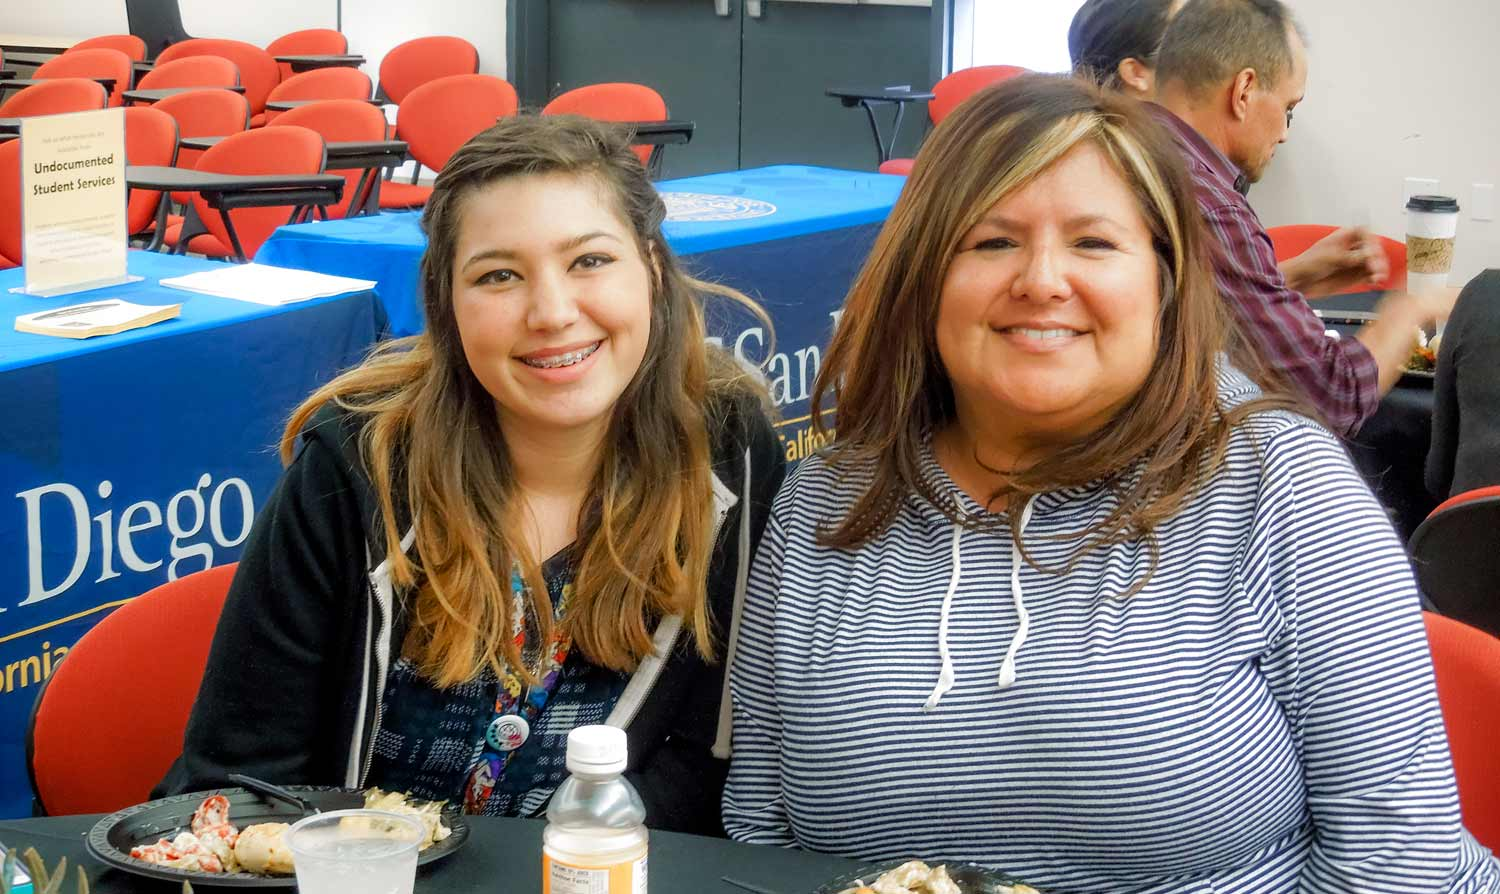 Photo: From left, Southwestern College student Hali Urista and Kimi Rodriguez-McSwain, adjunct counselor at Southwestern College.